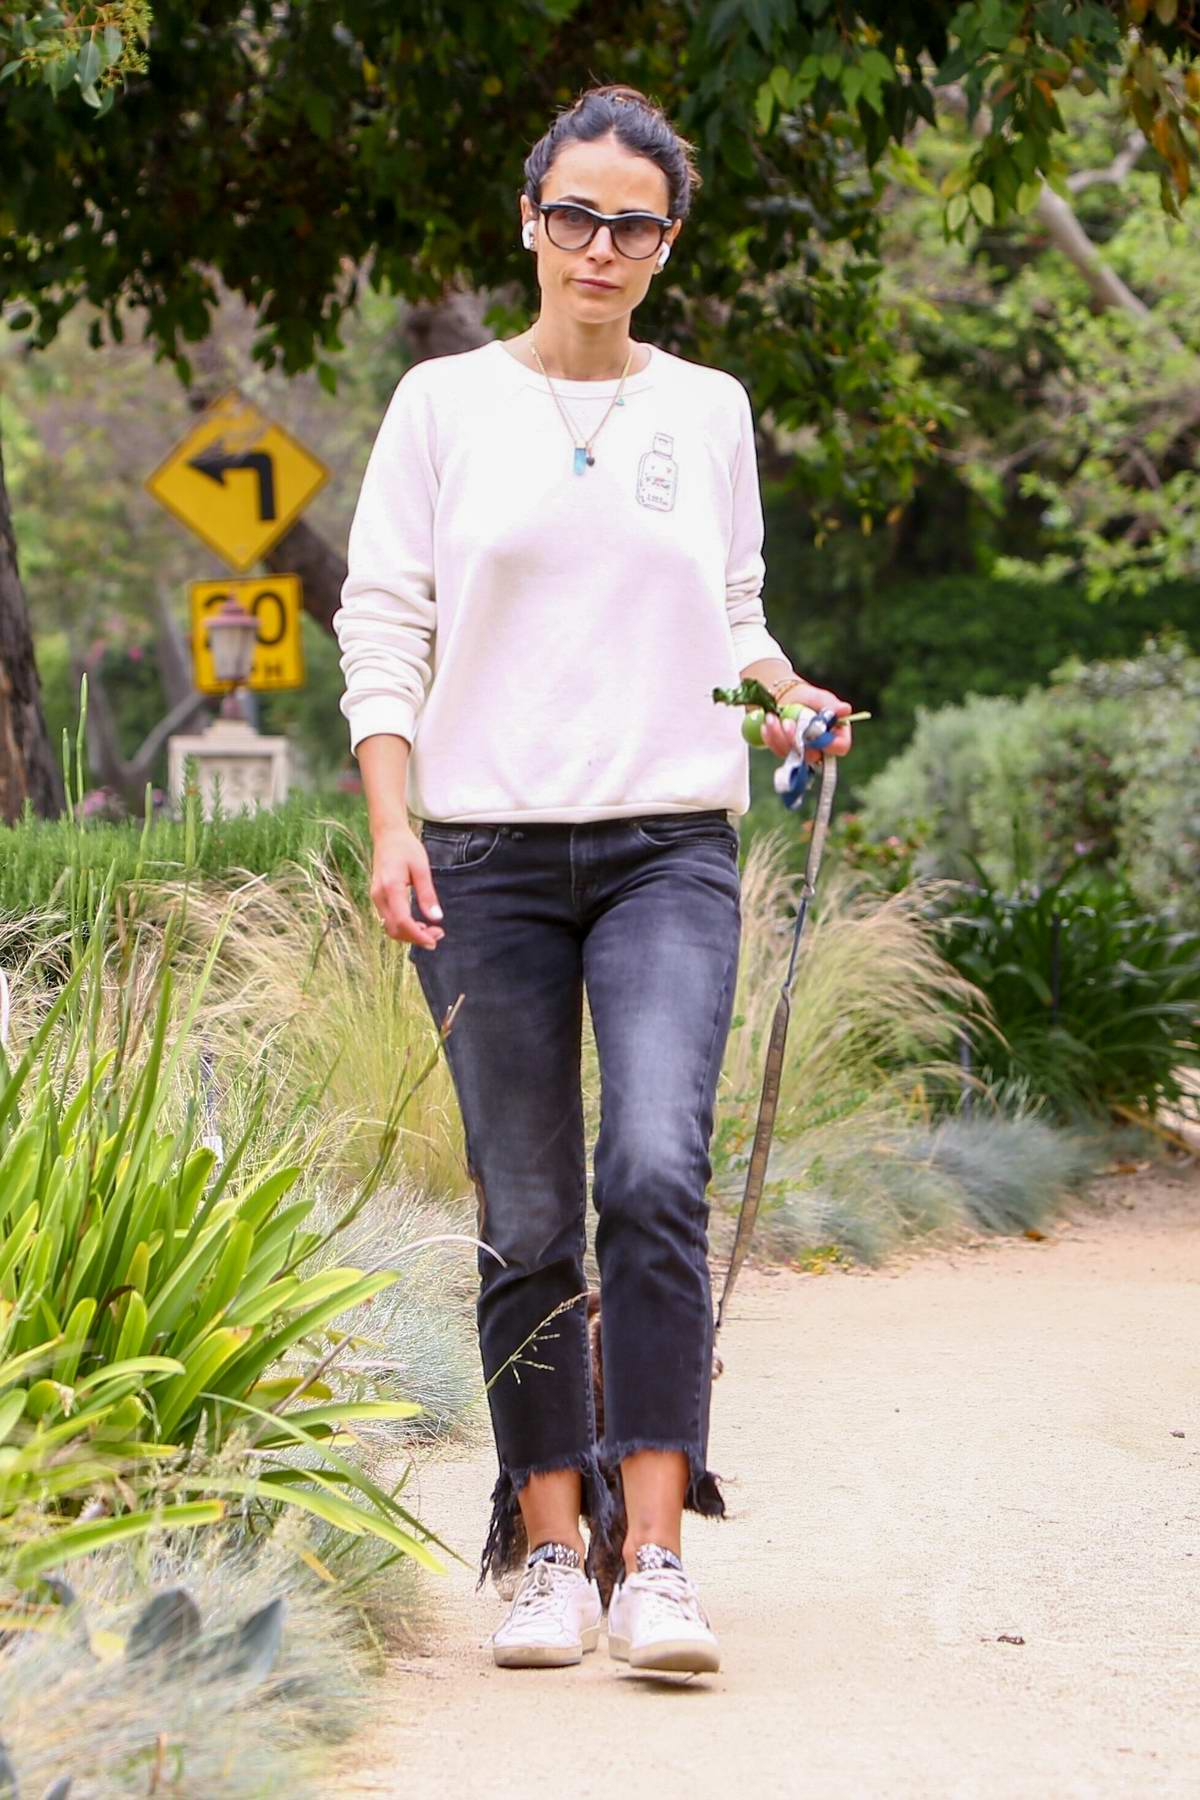 Jordana Brewster steps out for a walk with her dog in Los Angeles